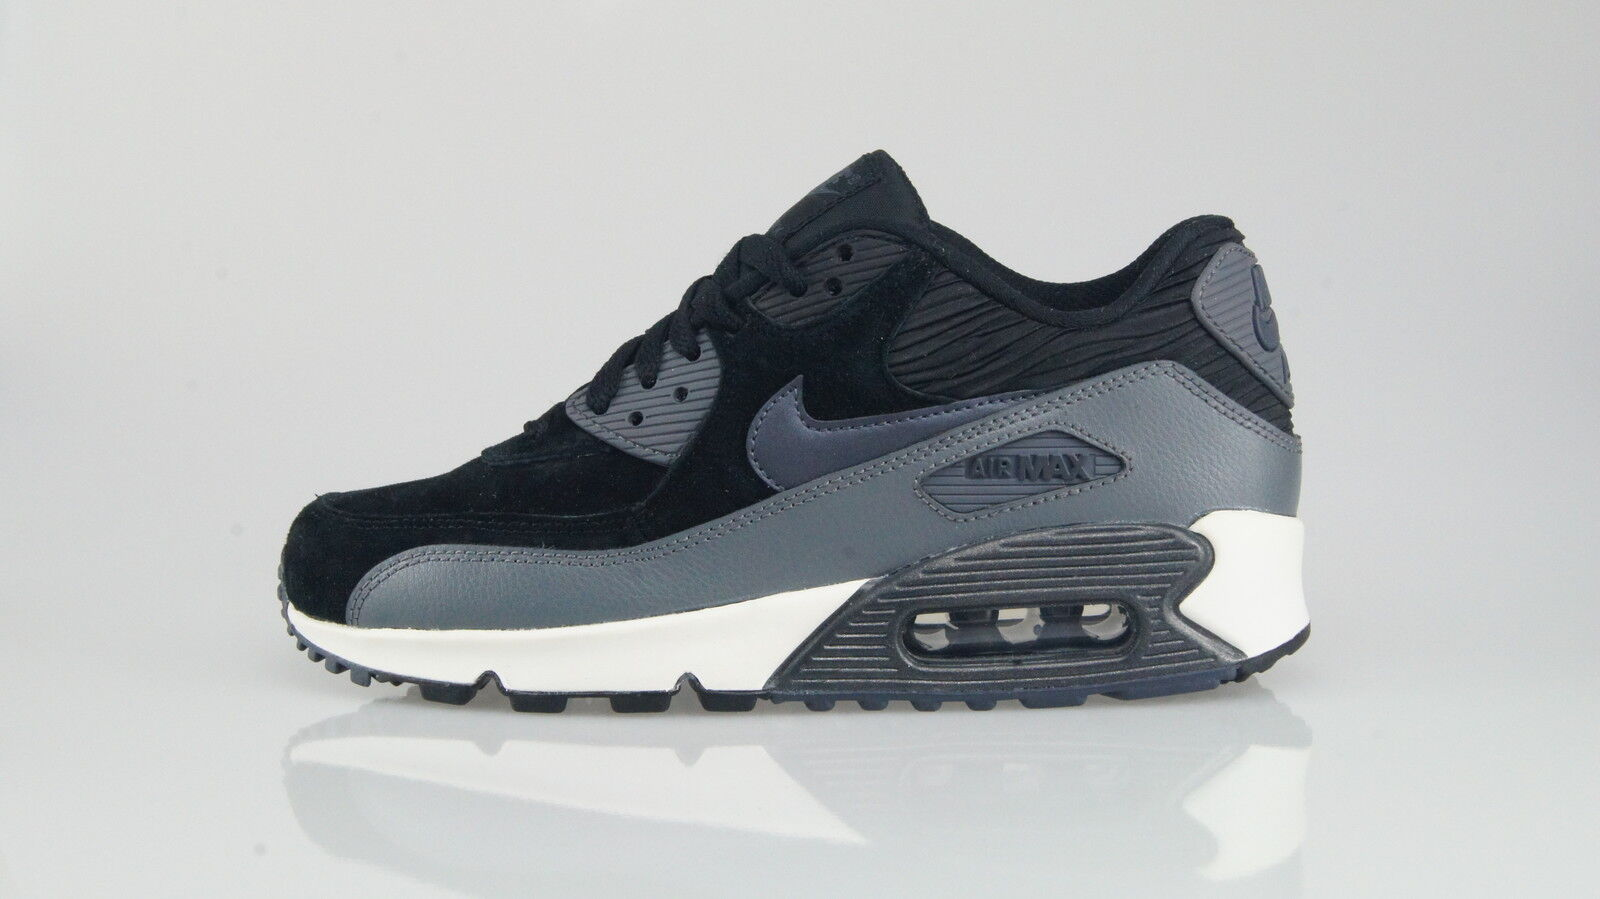 NIKE AIR MAX 90 LTHR Size 38 (7US)